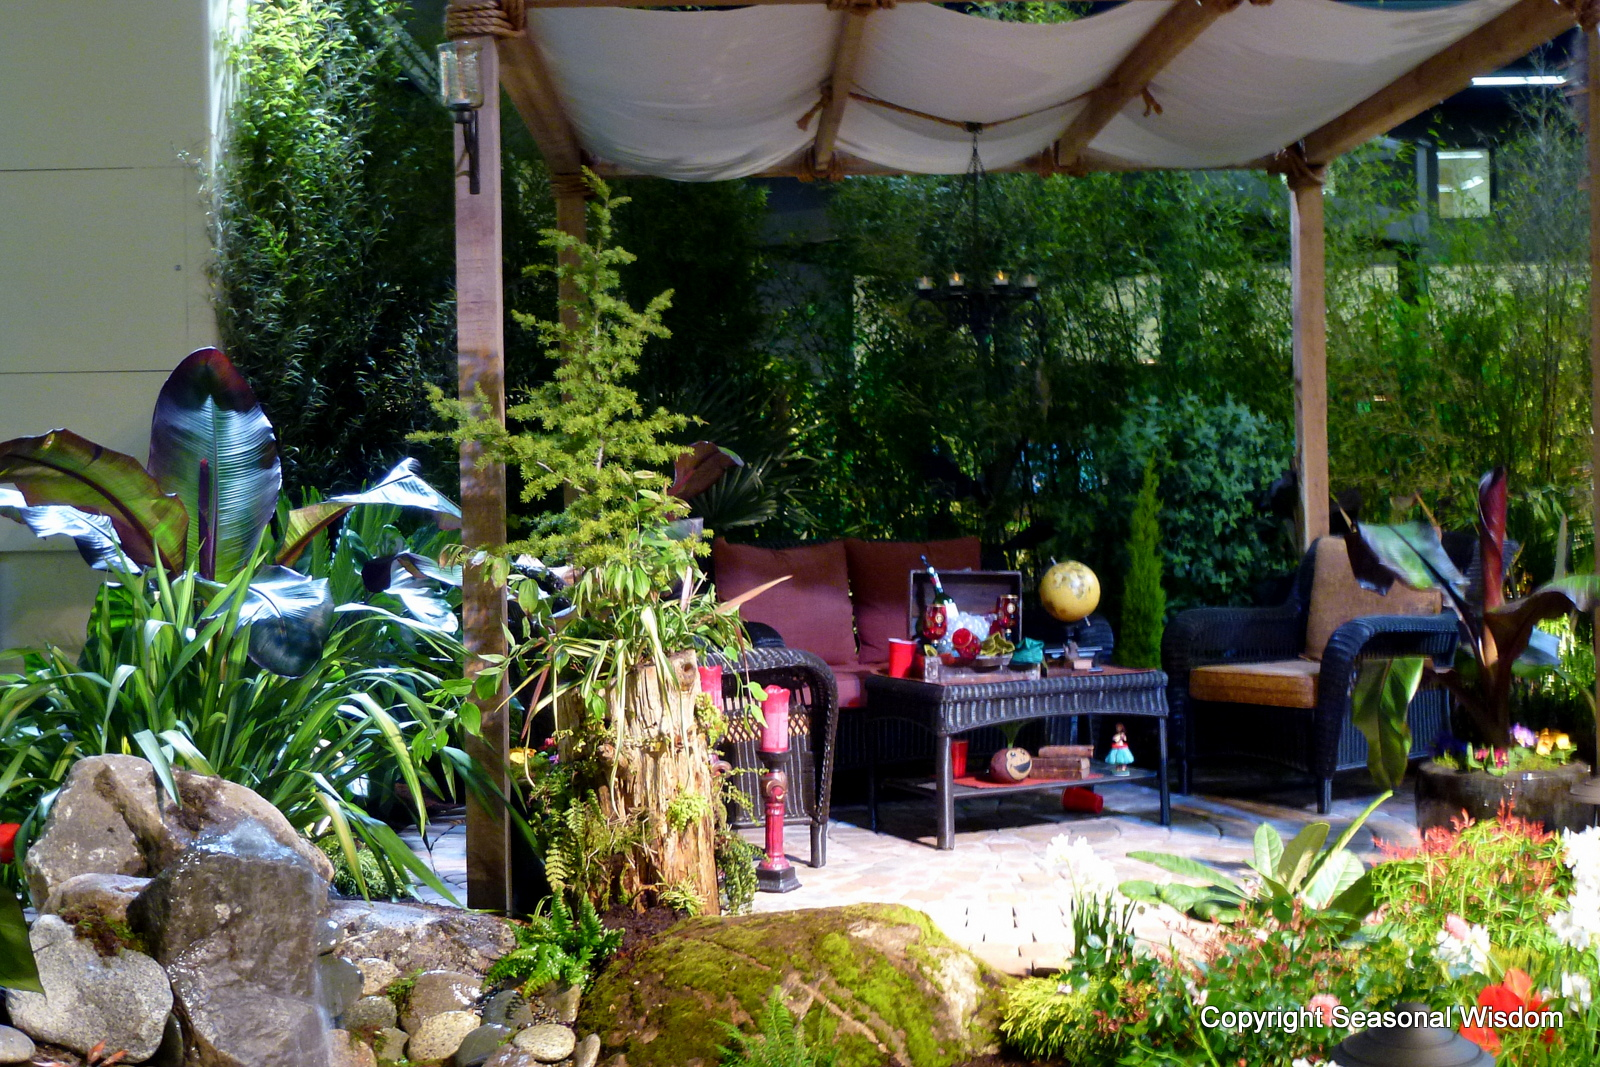 A Garden Hideaway Design for the Entire Family - Seasonal Wisdom